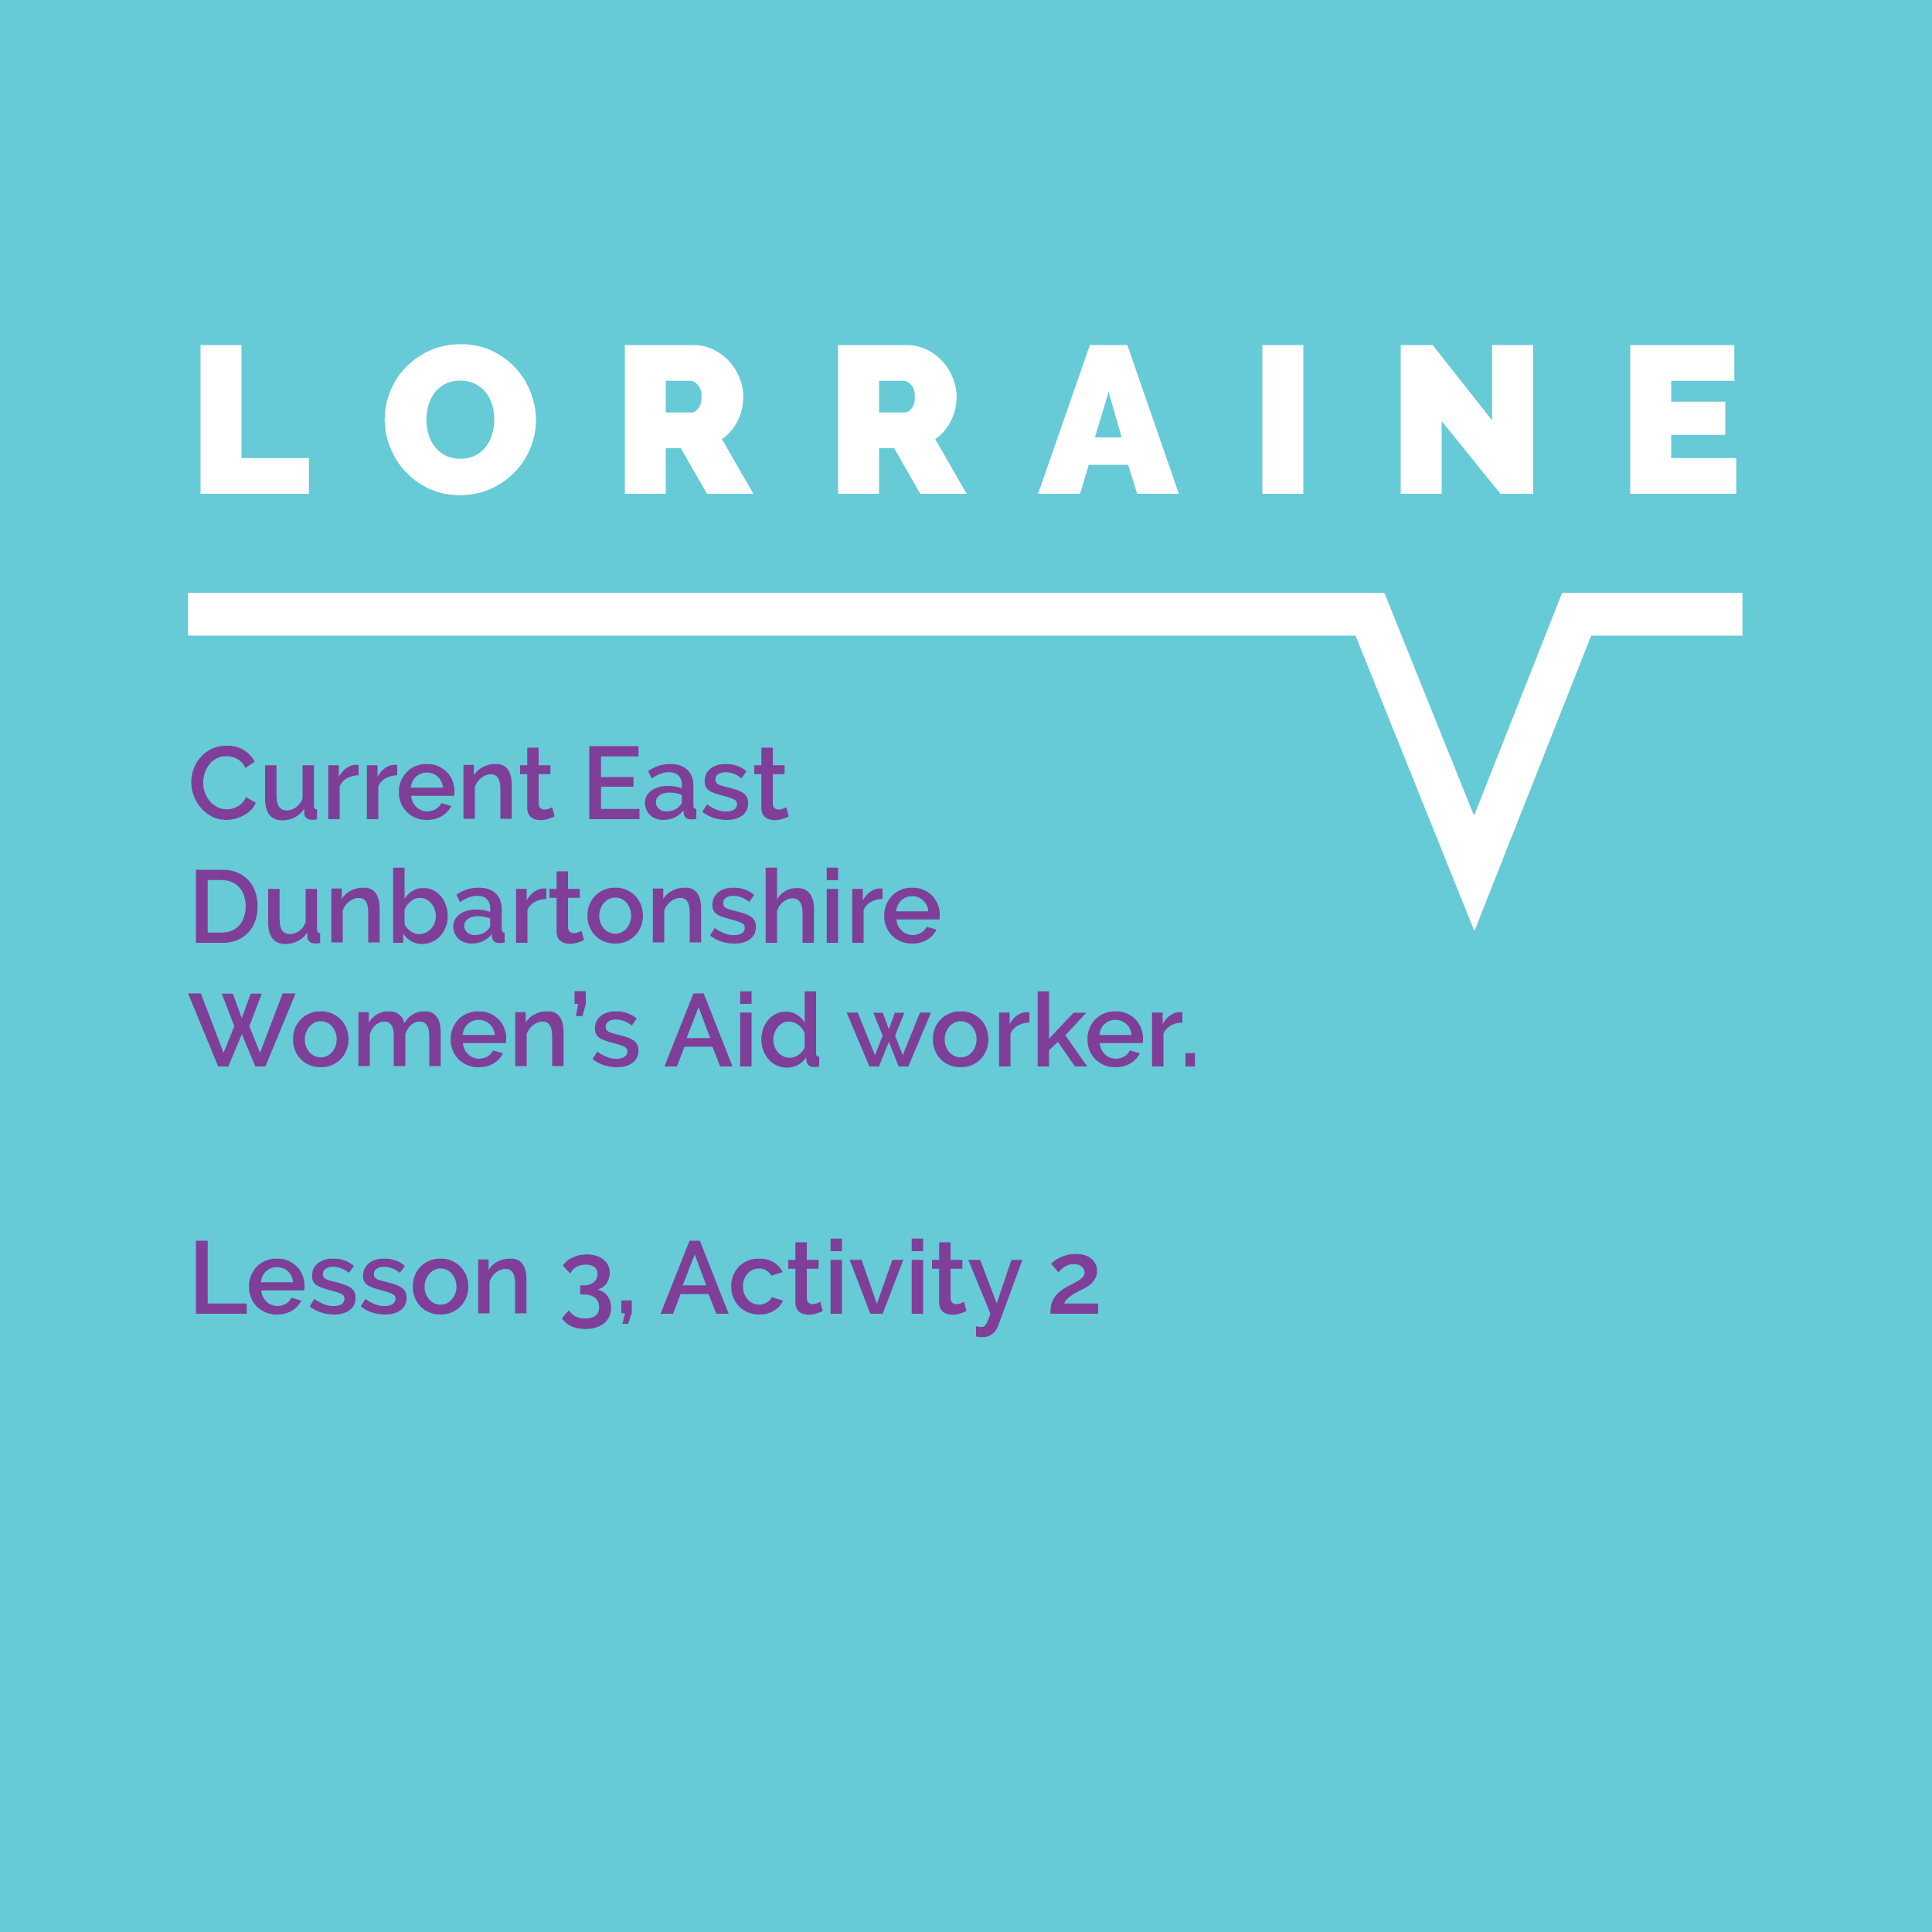 Speaking Out Learning Resource, Lesson 3 Activity 2: Lorraine, Current East Dunbartonshire Women's Aid worker